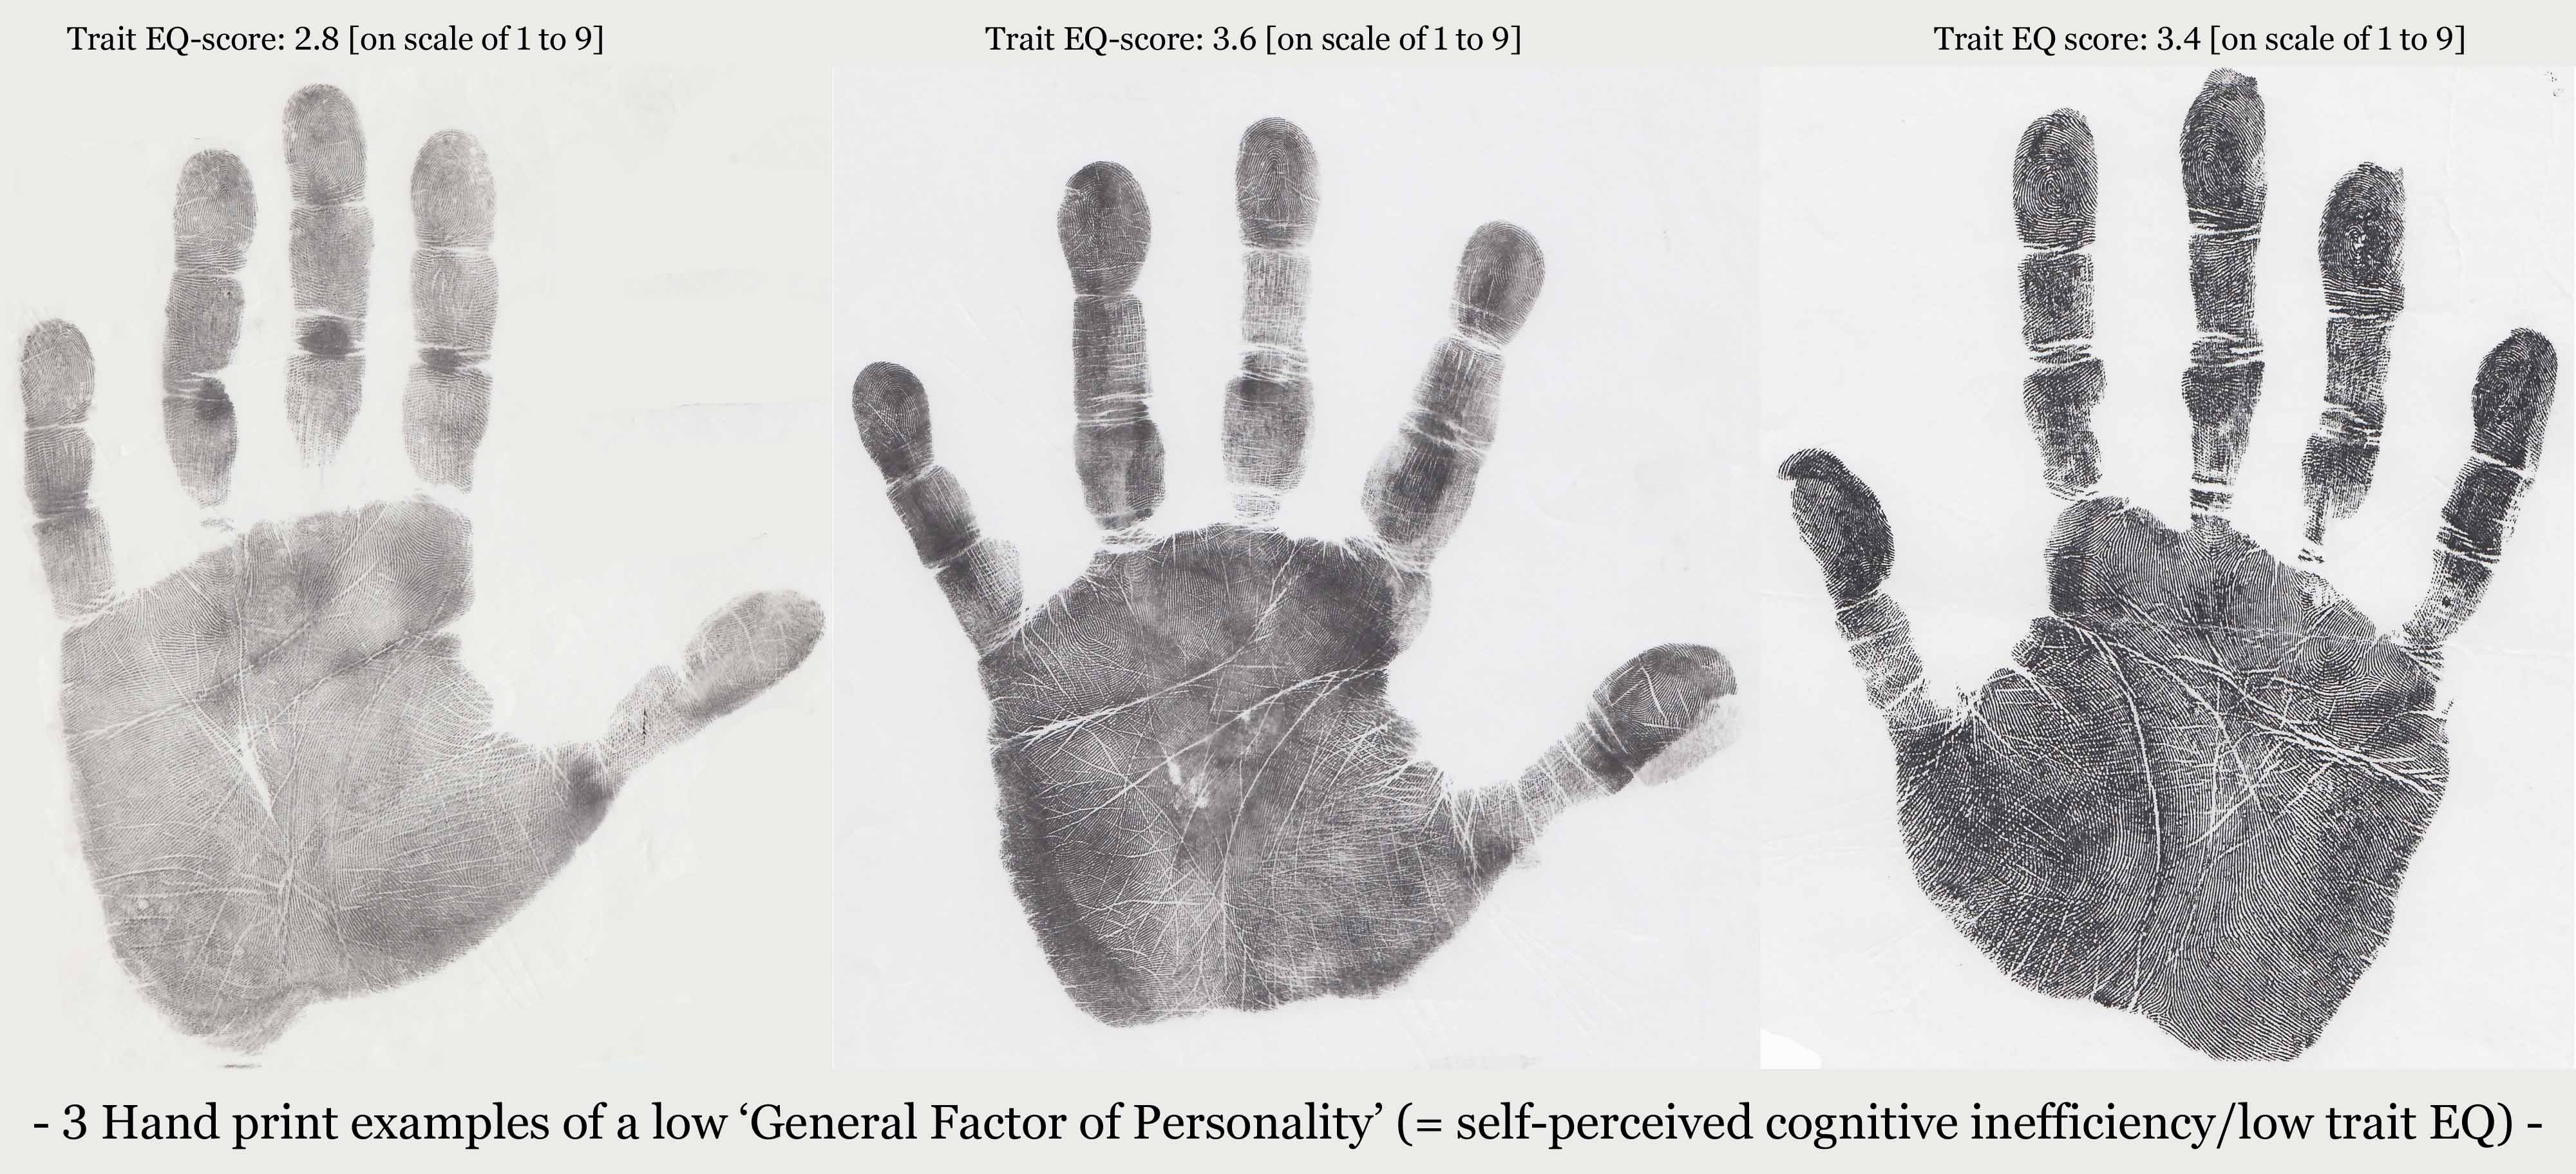 3 Hand print examples of a low 'General Factor of Personality' (= self-perceived cognitive inefficiency / low trait EQ)